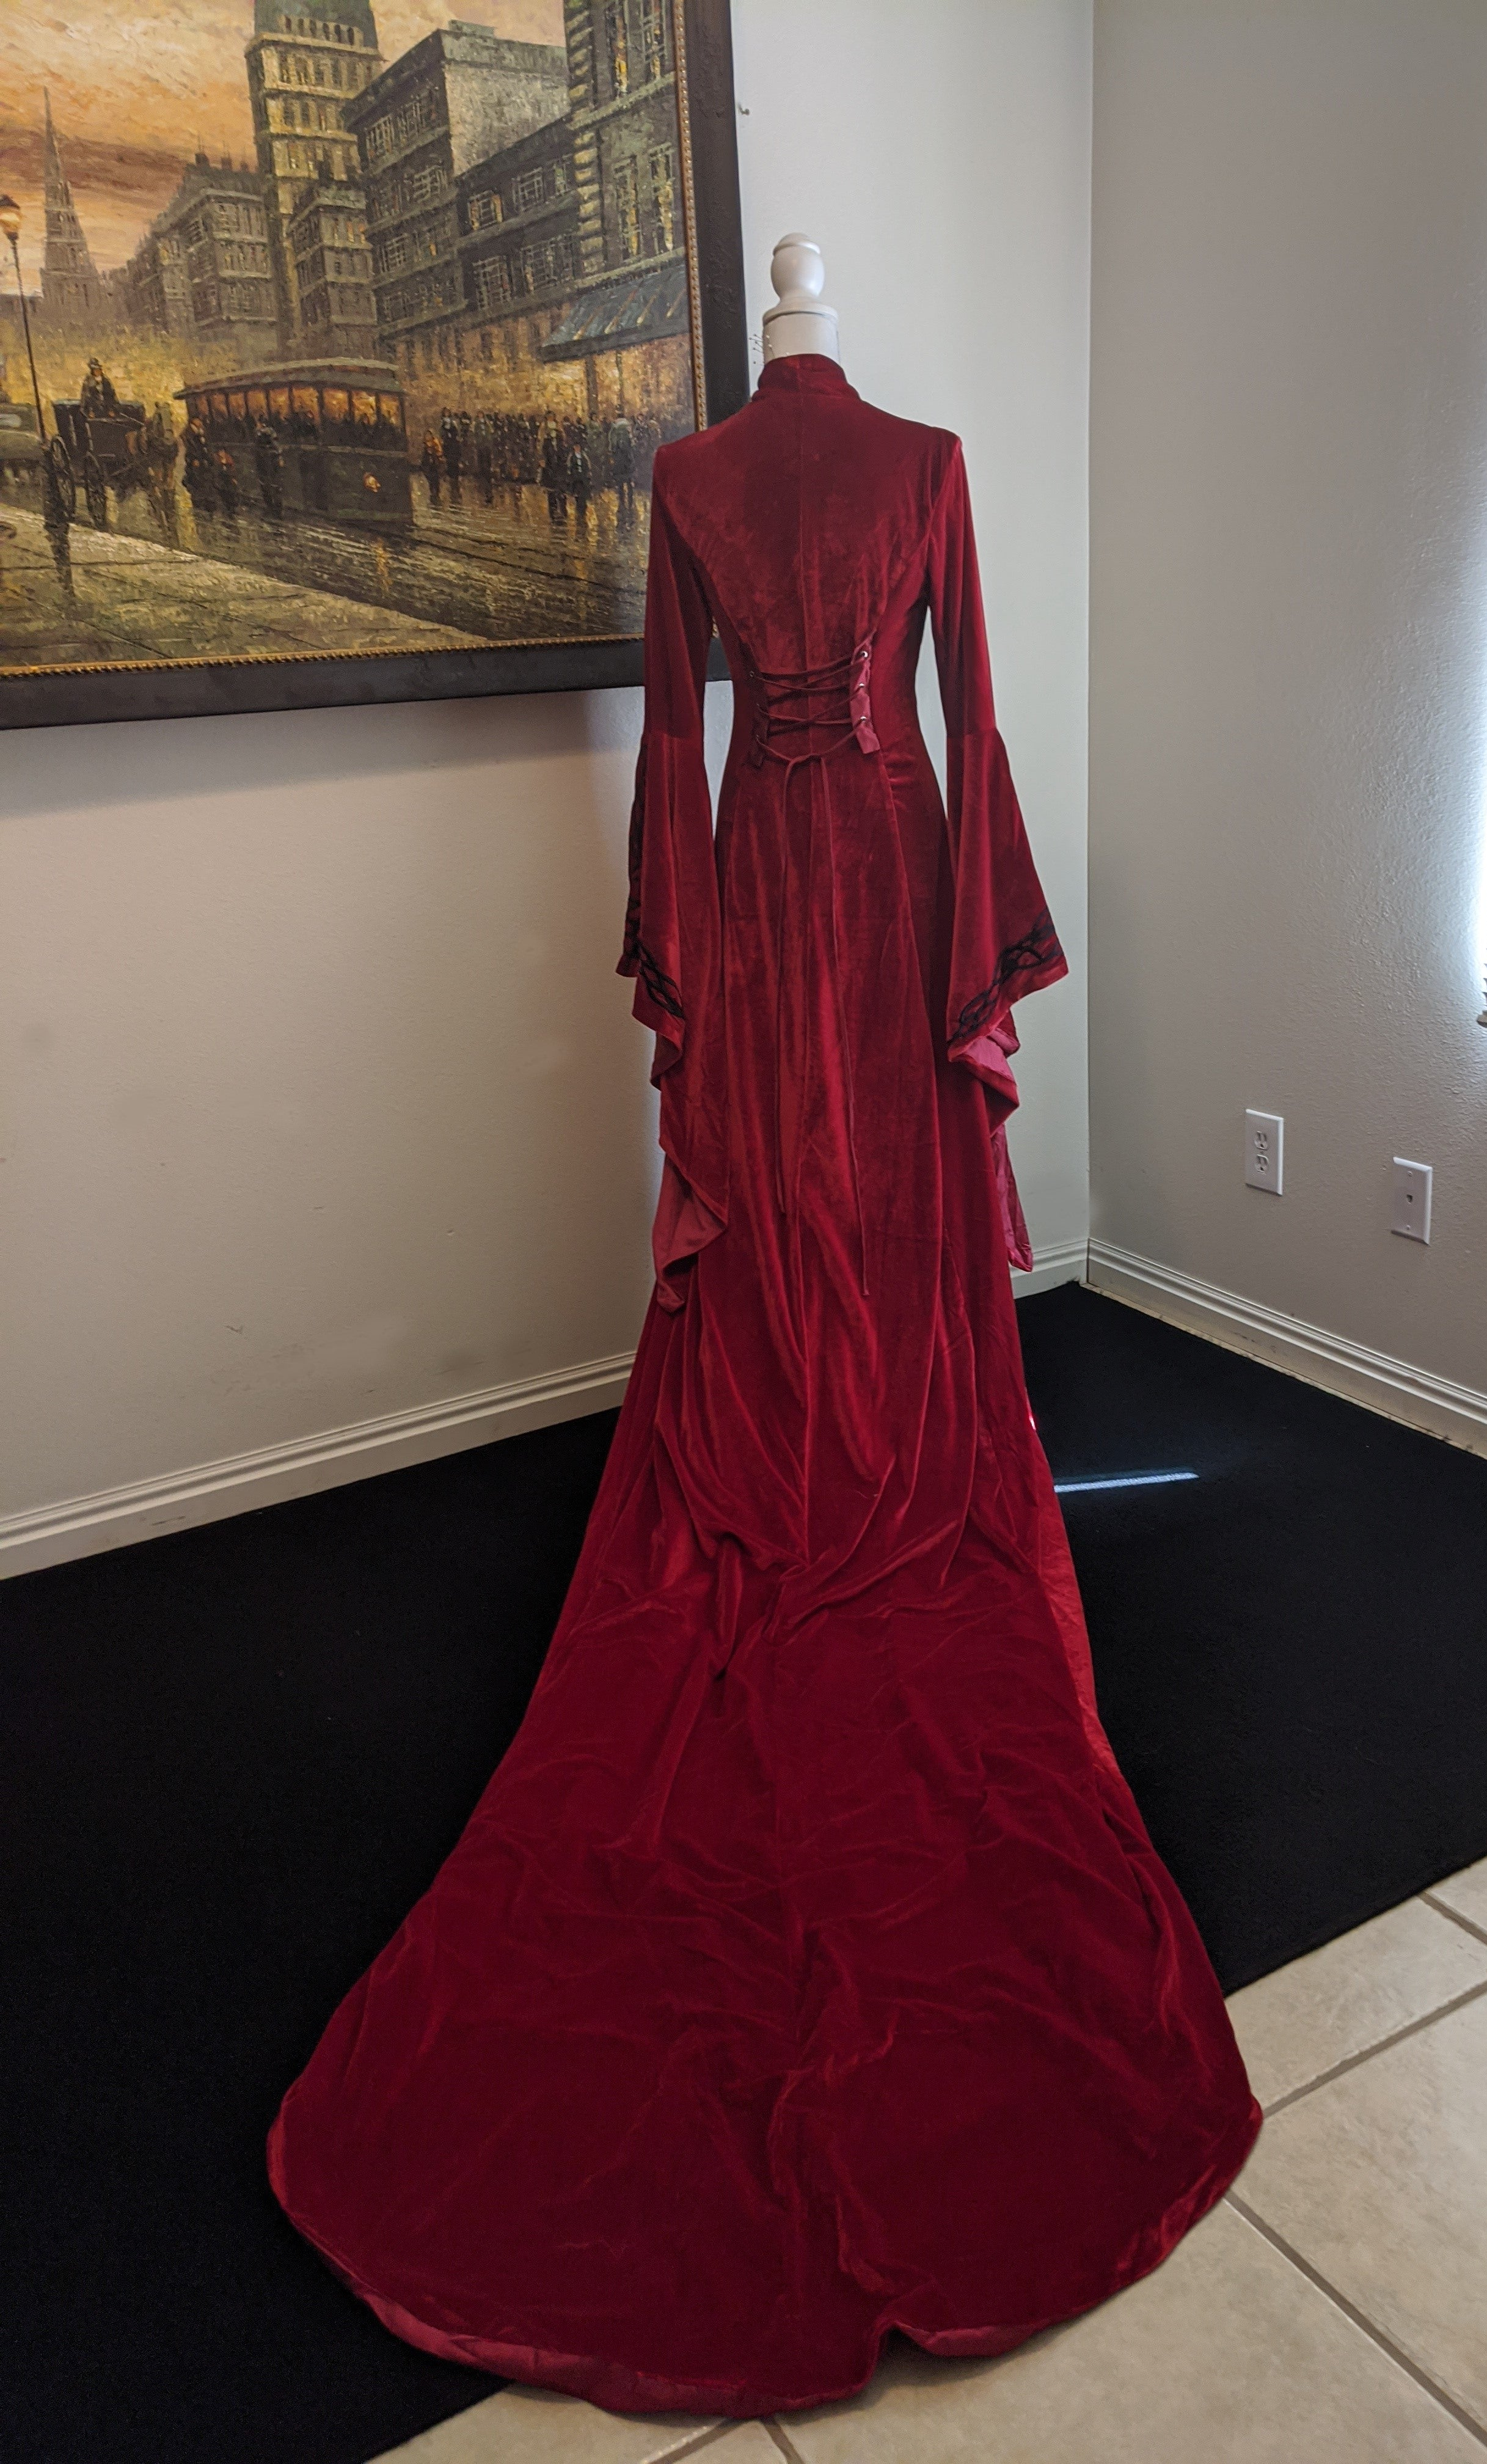 Red Gothic Wedding Cloak/ Gown